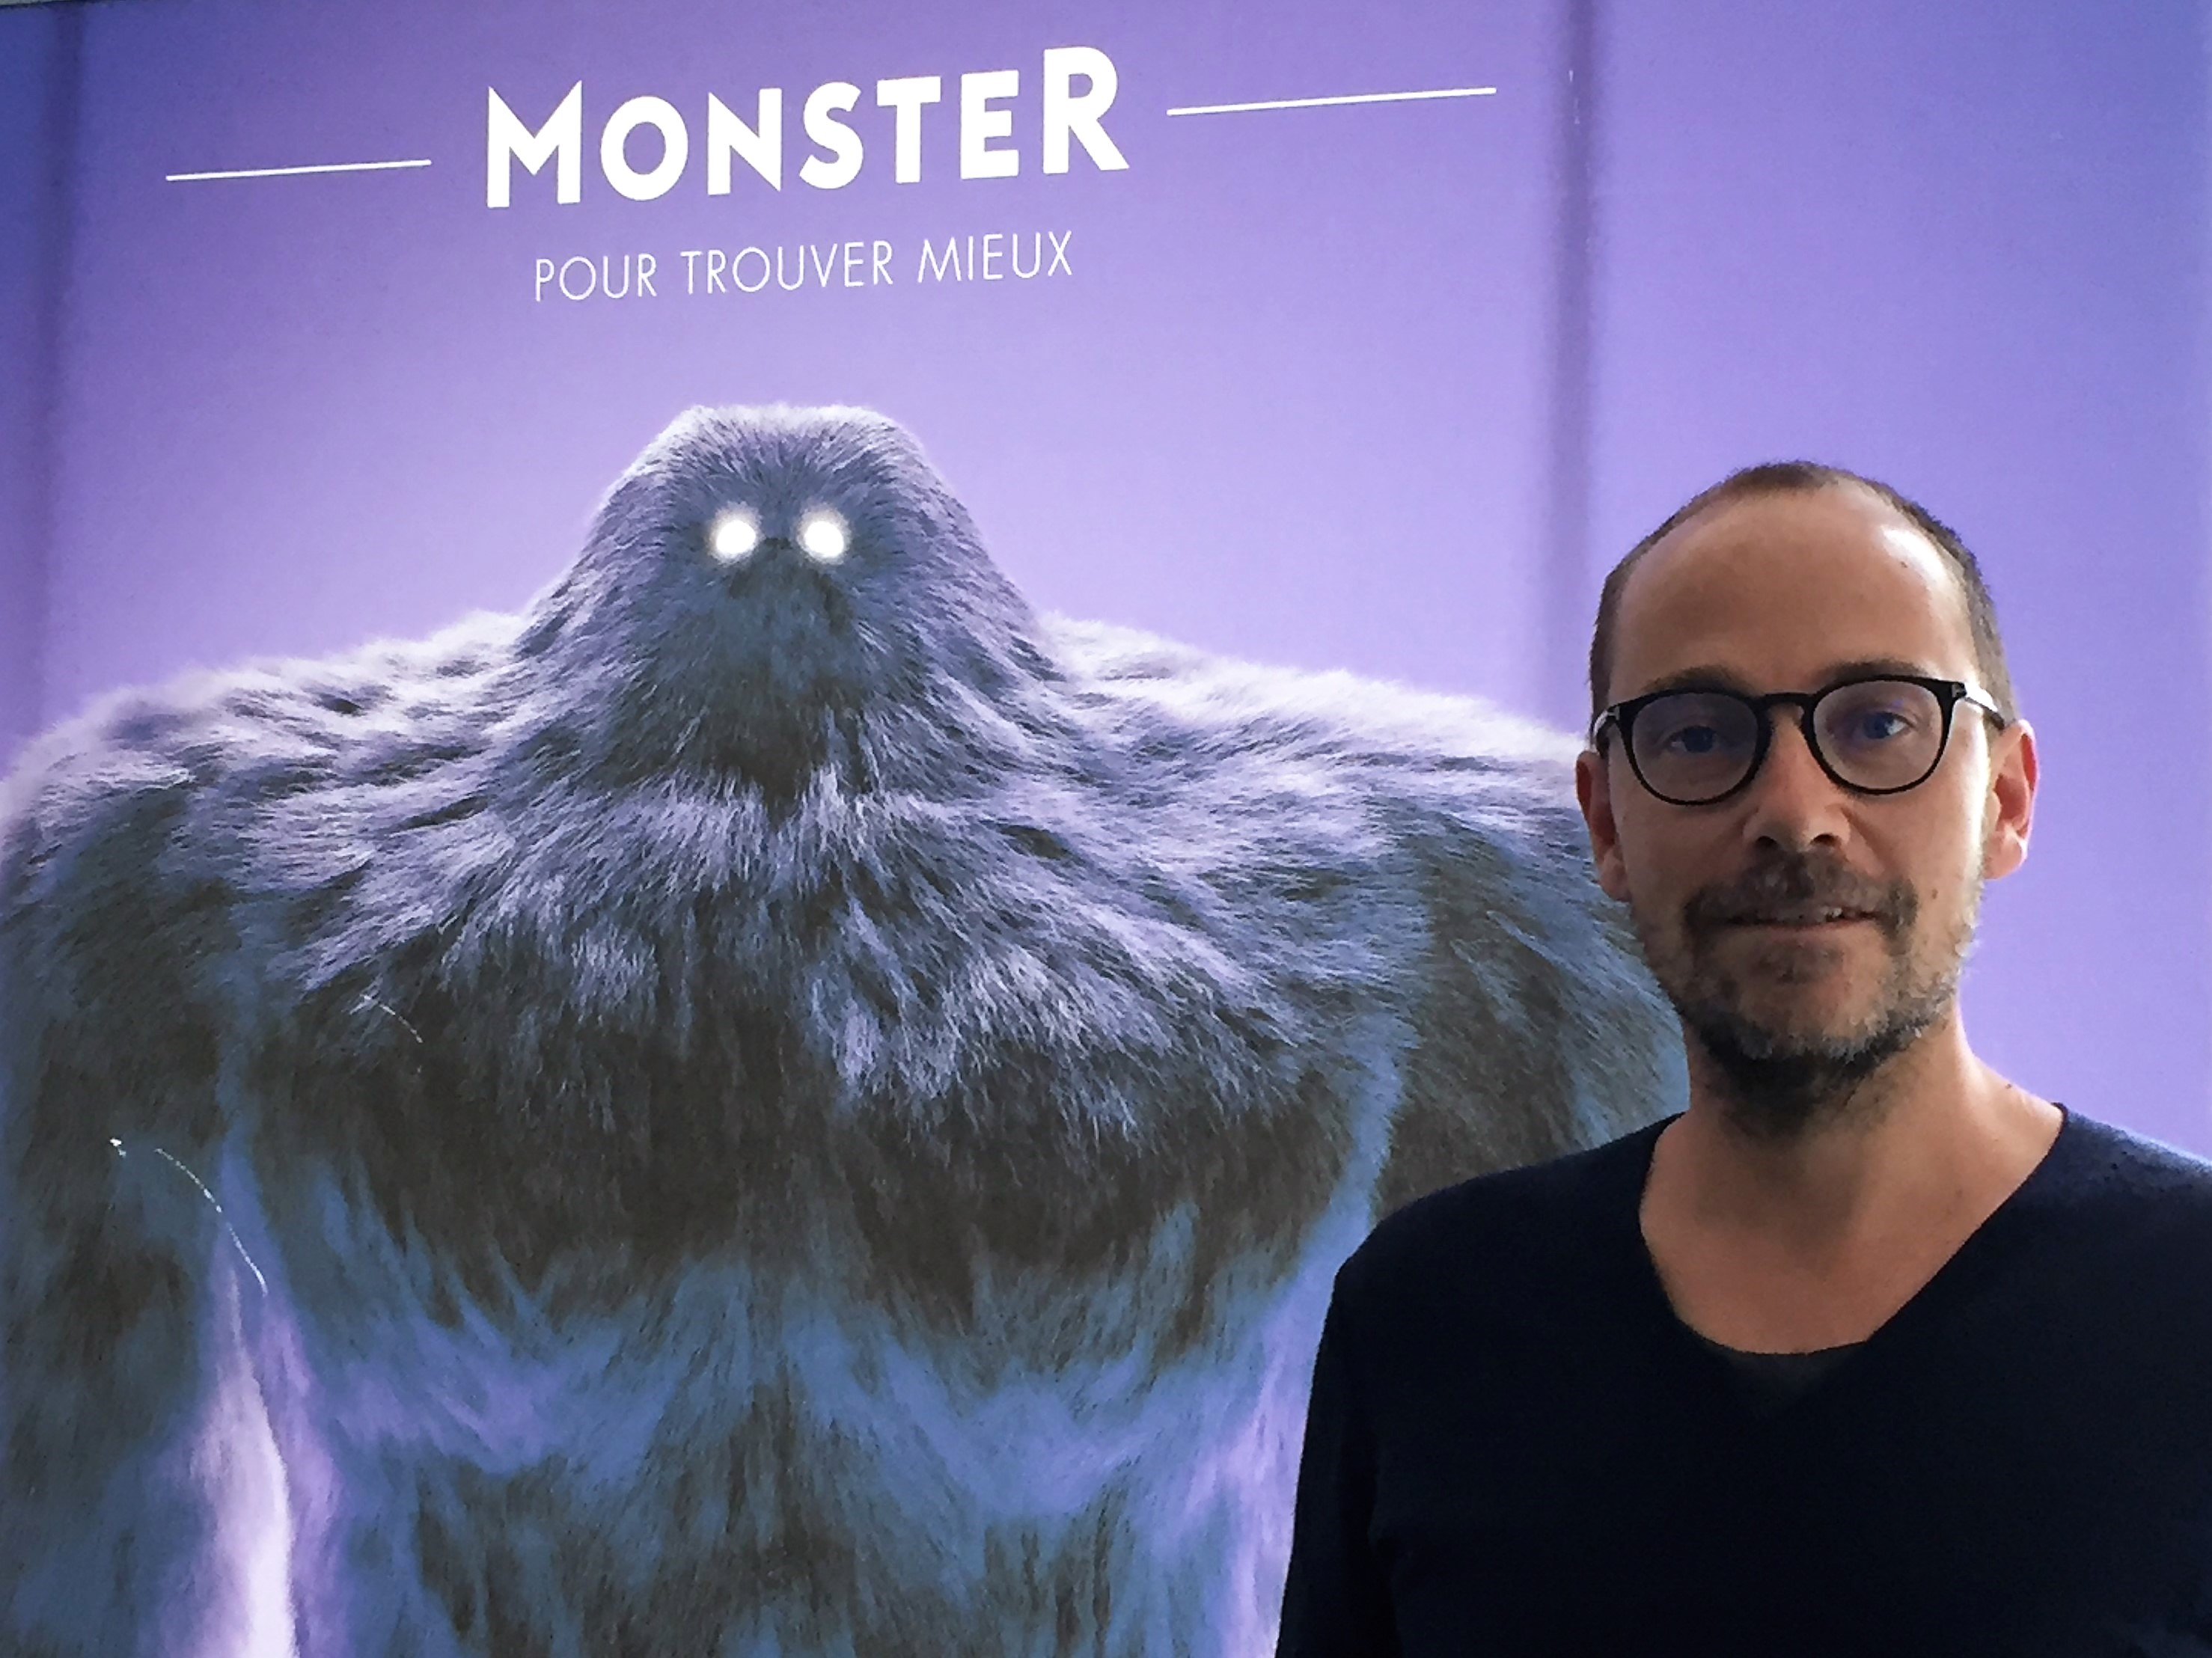 Karl Rigal, responsable éditorial Monster France. - Monster France